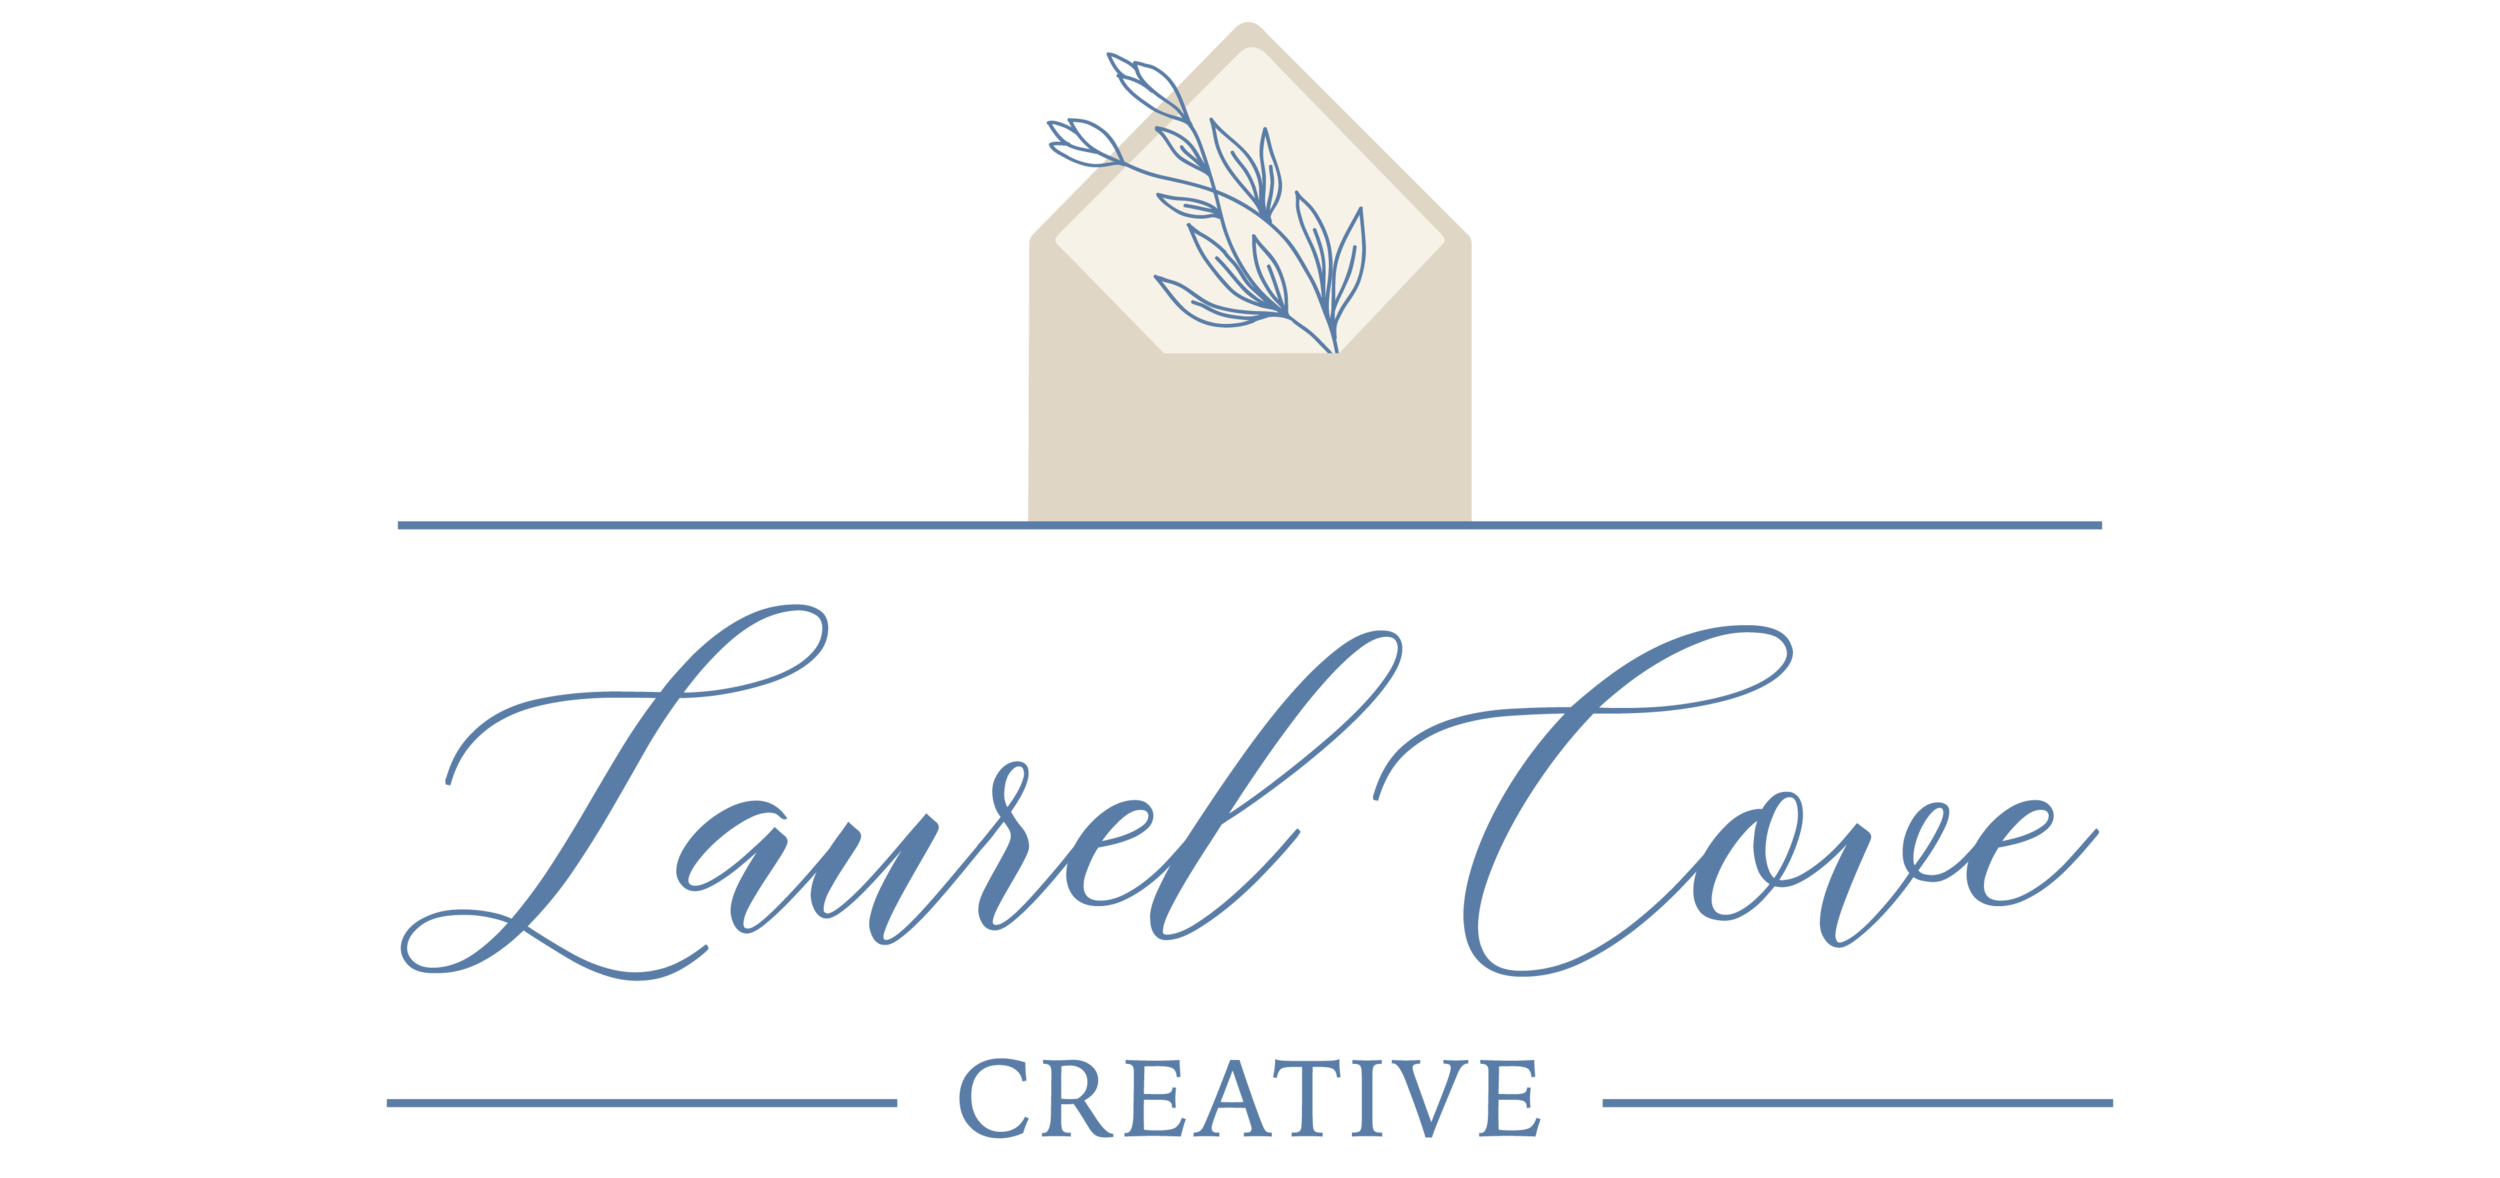 LaurelCoveCreative2019.png